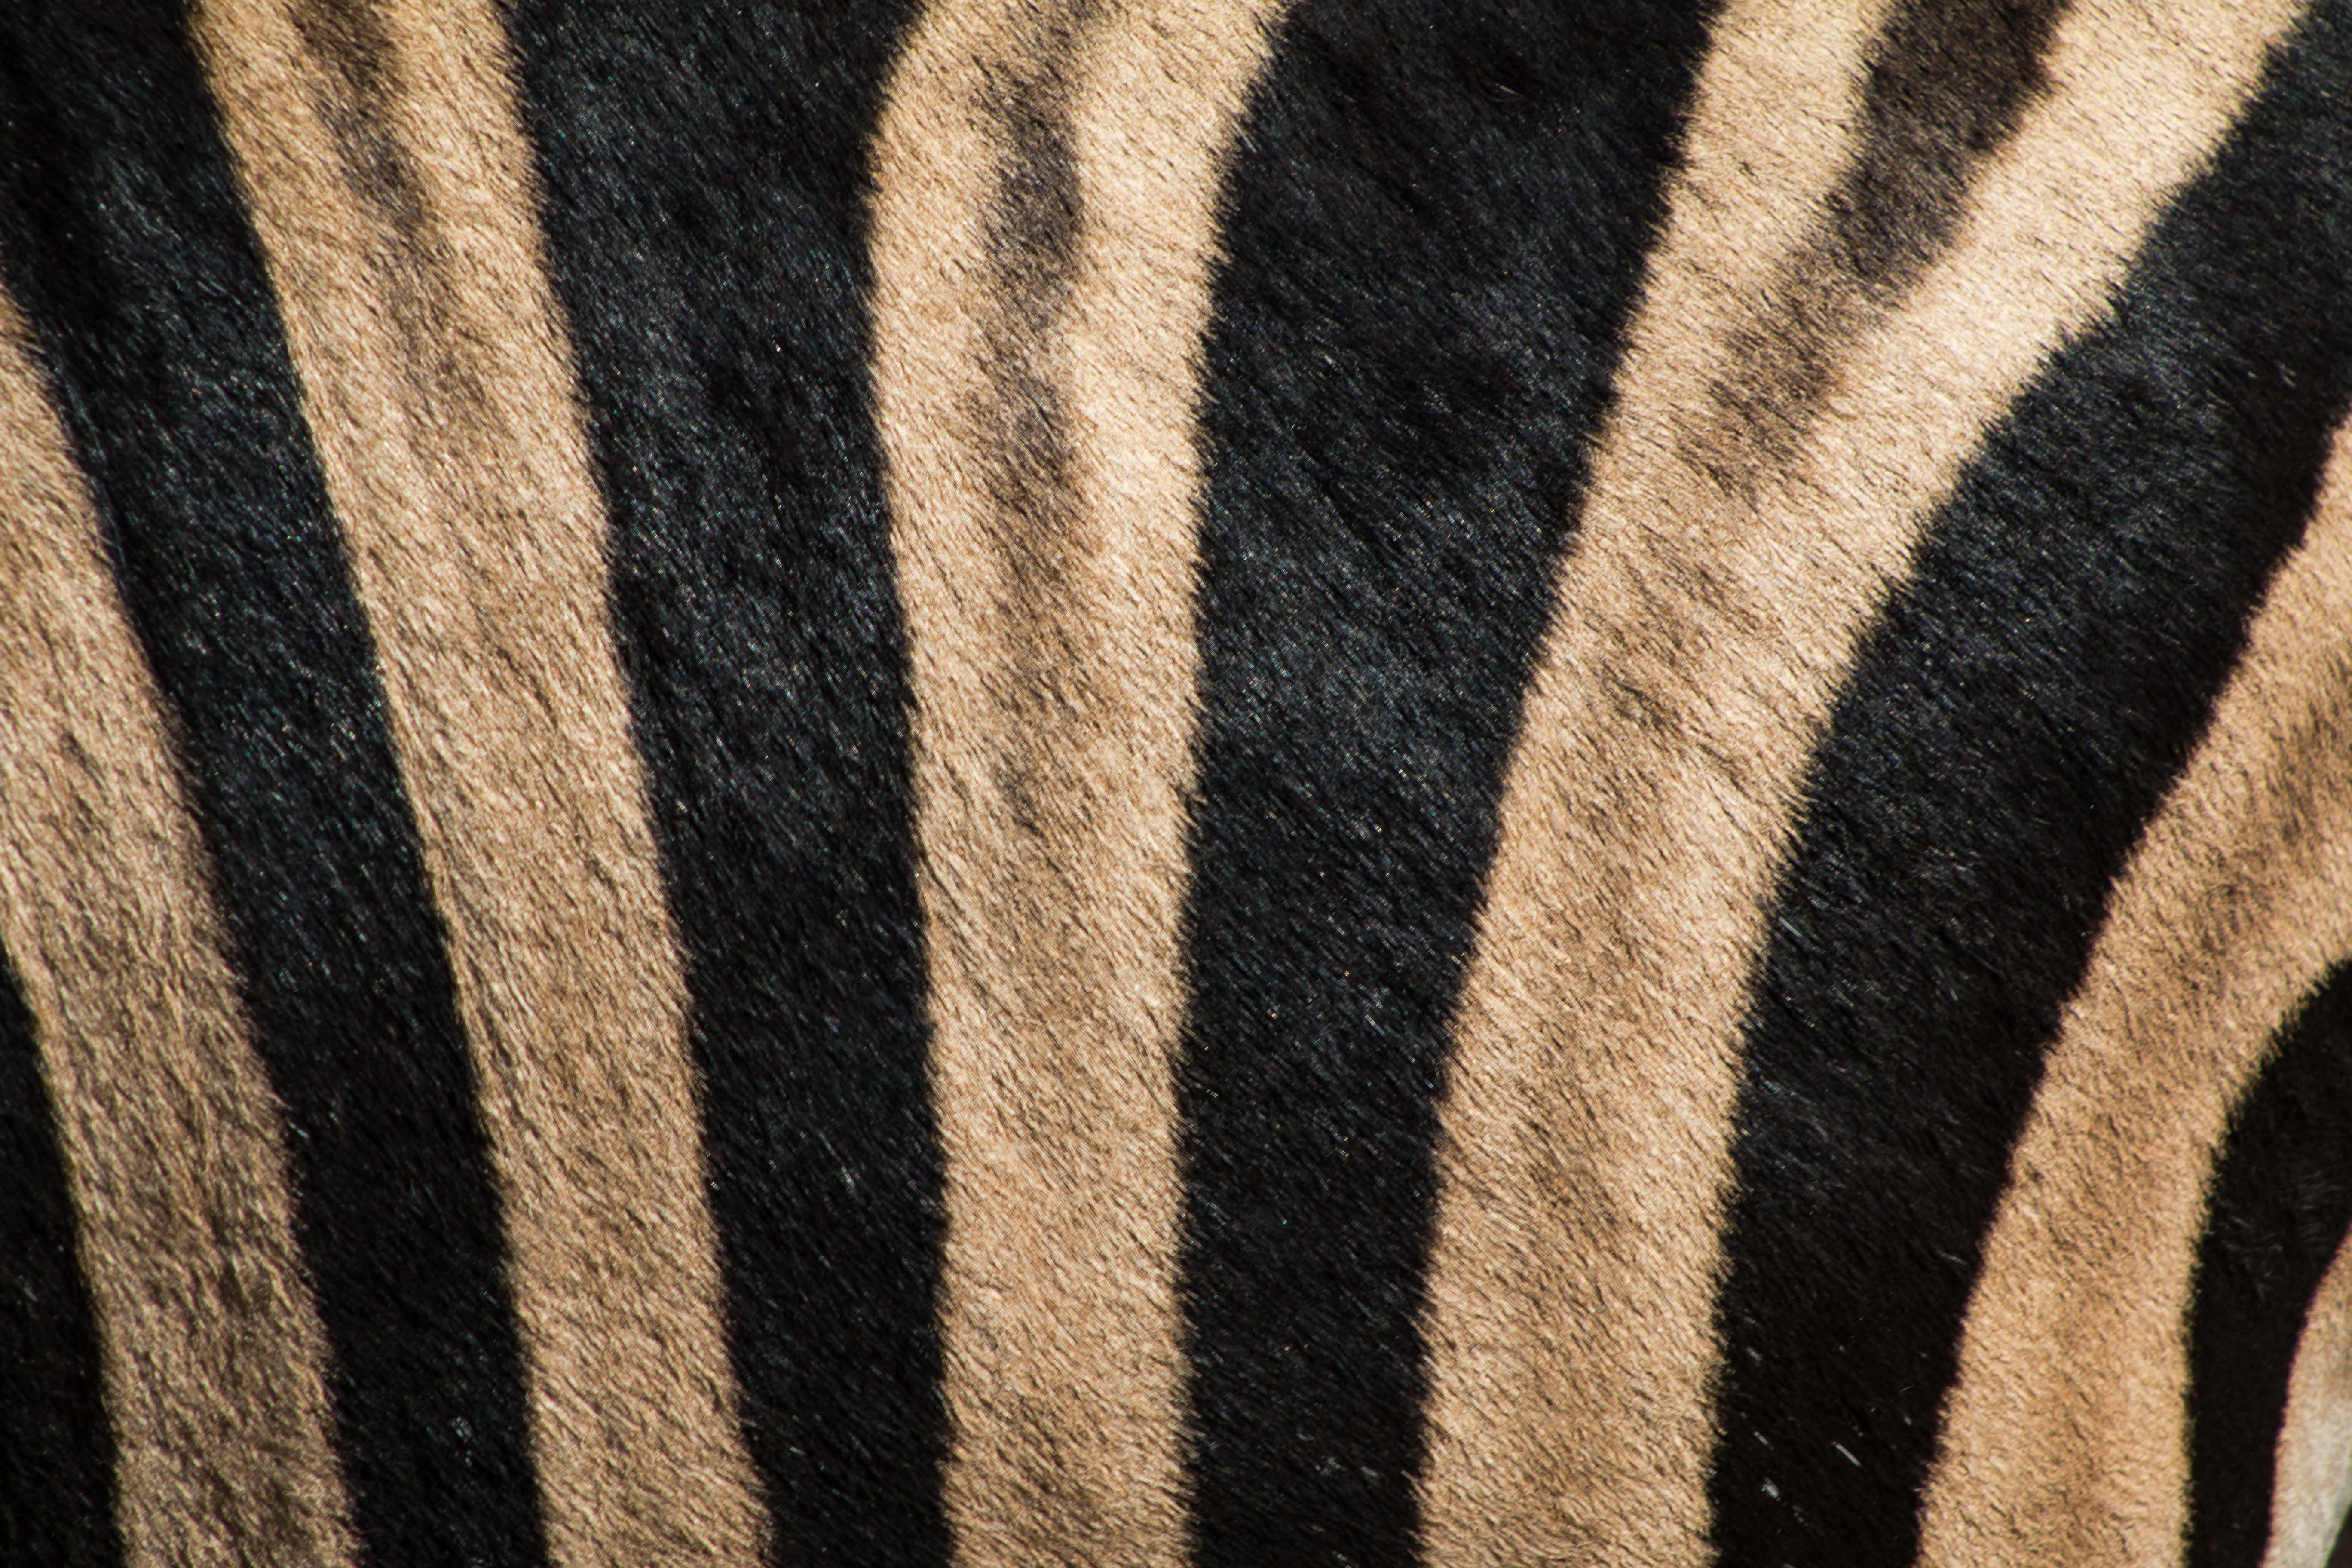 black and brown tiger-print fleece rug